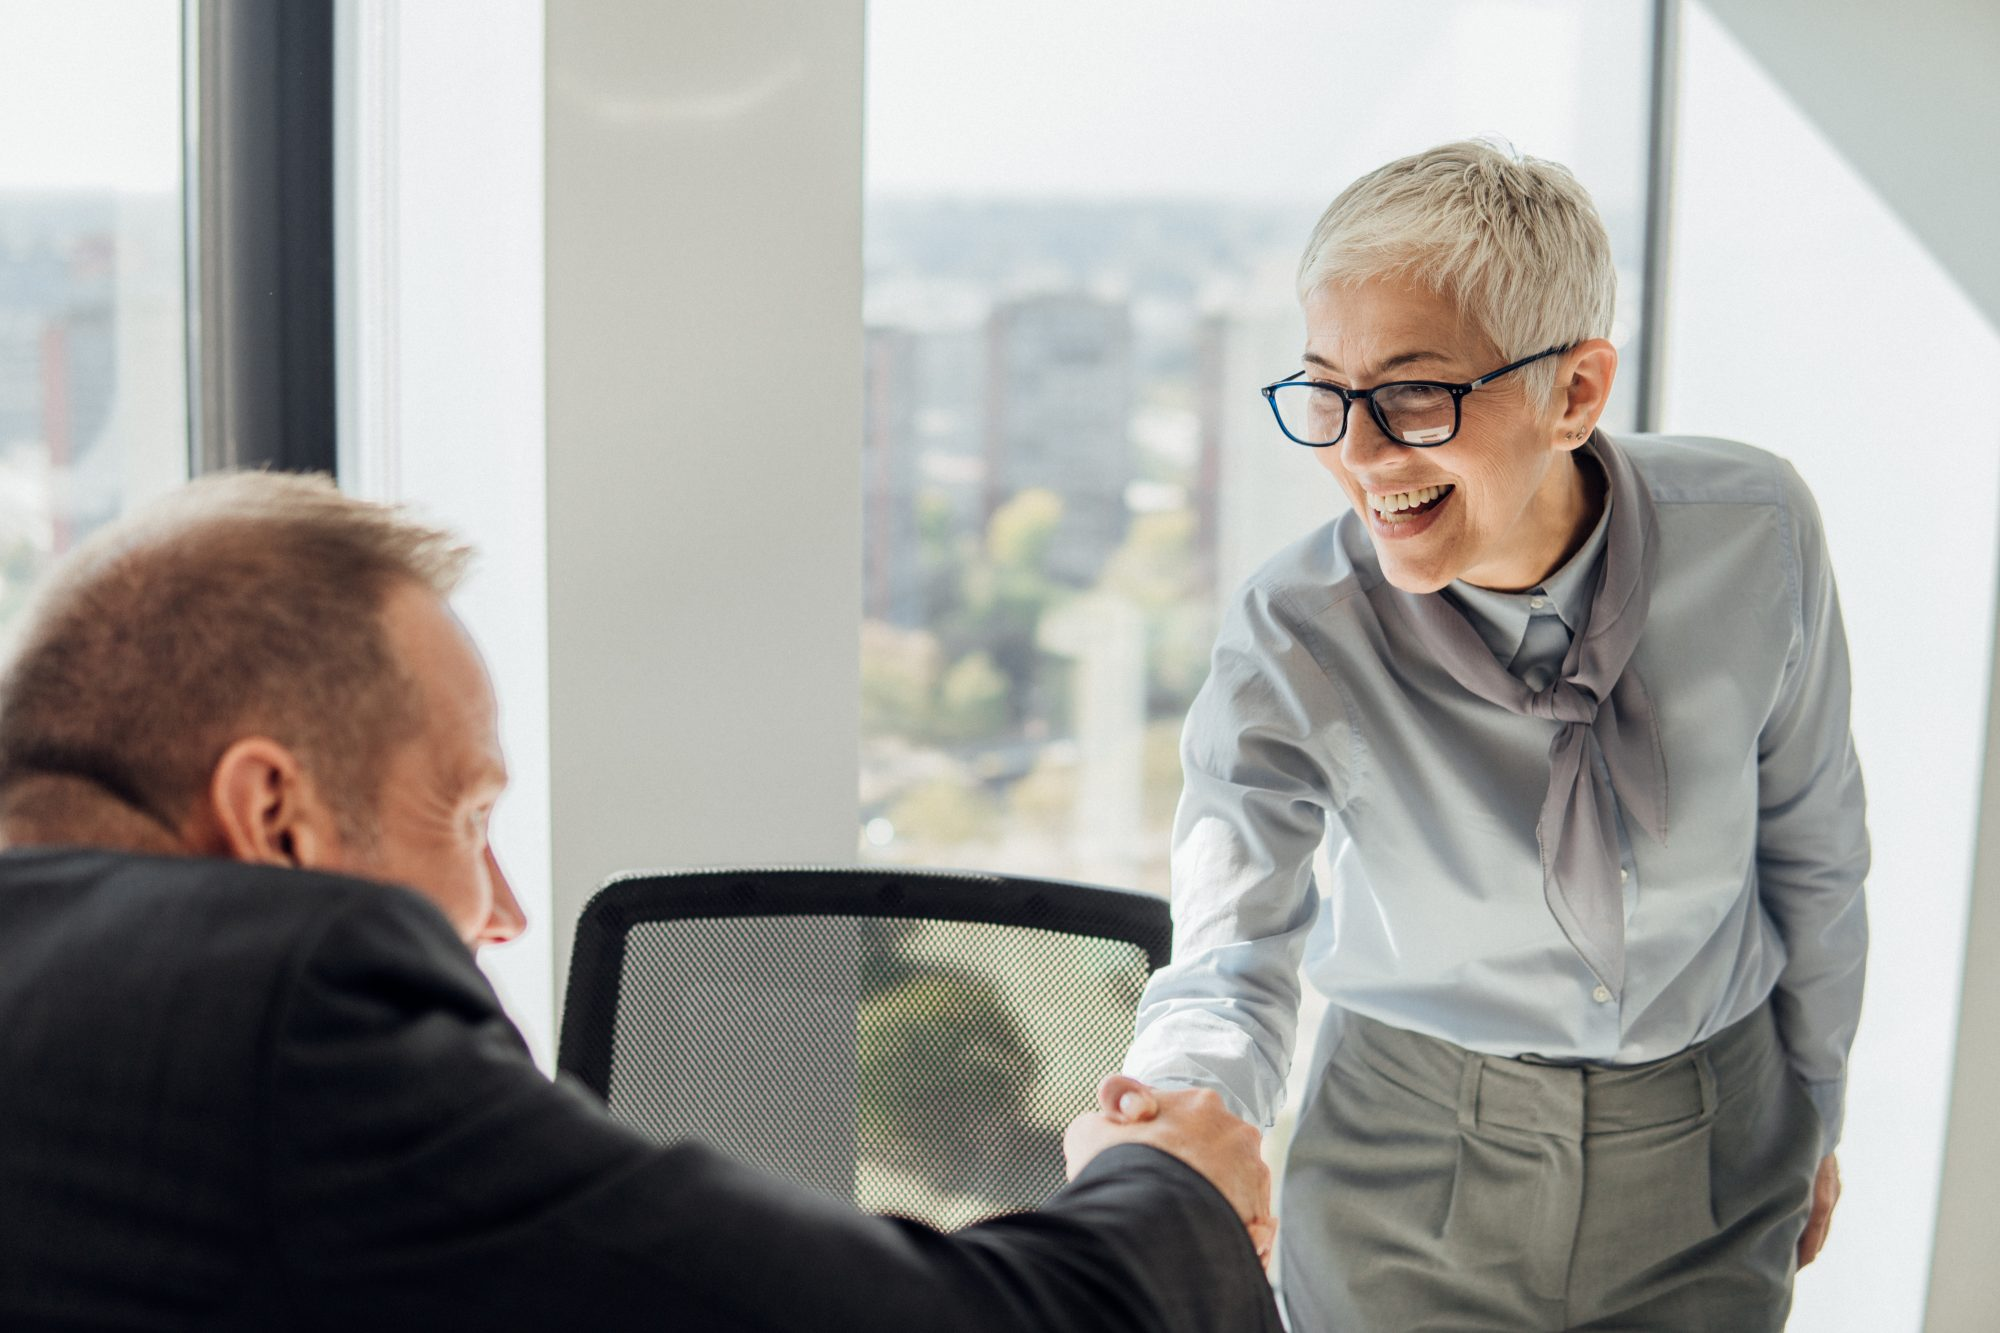 Smiling woman shaking hands with a coworker